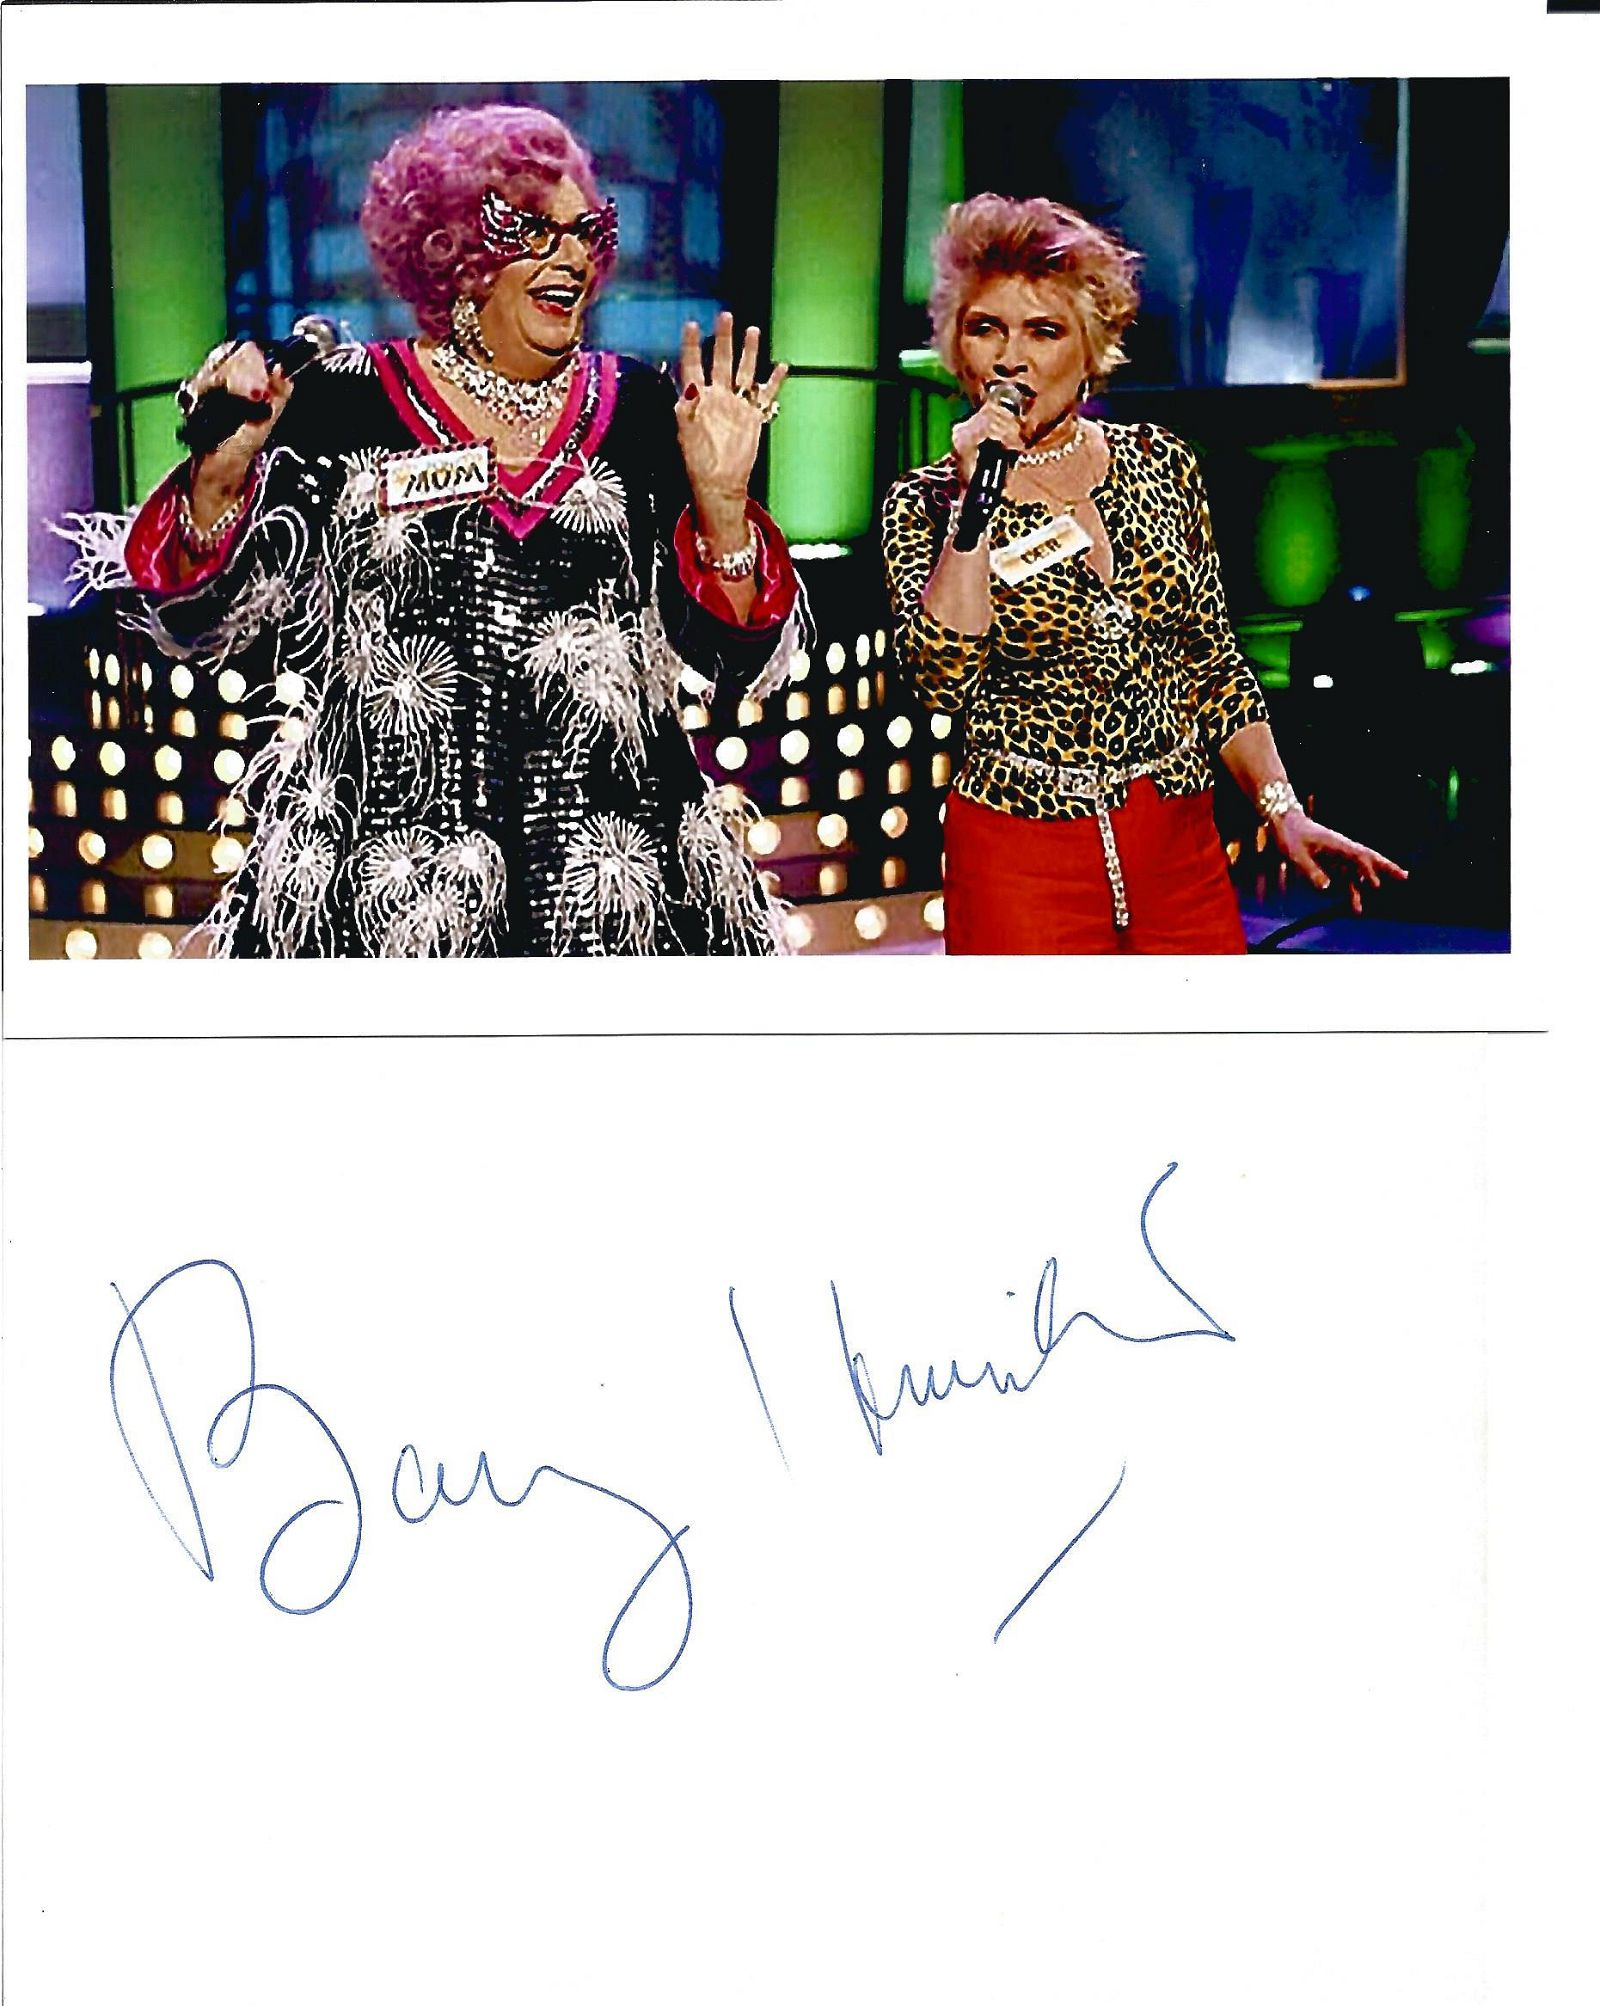 Barry Humphries 6x4 colour photograph complete with a